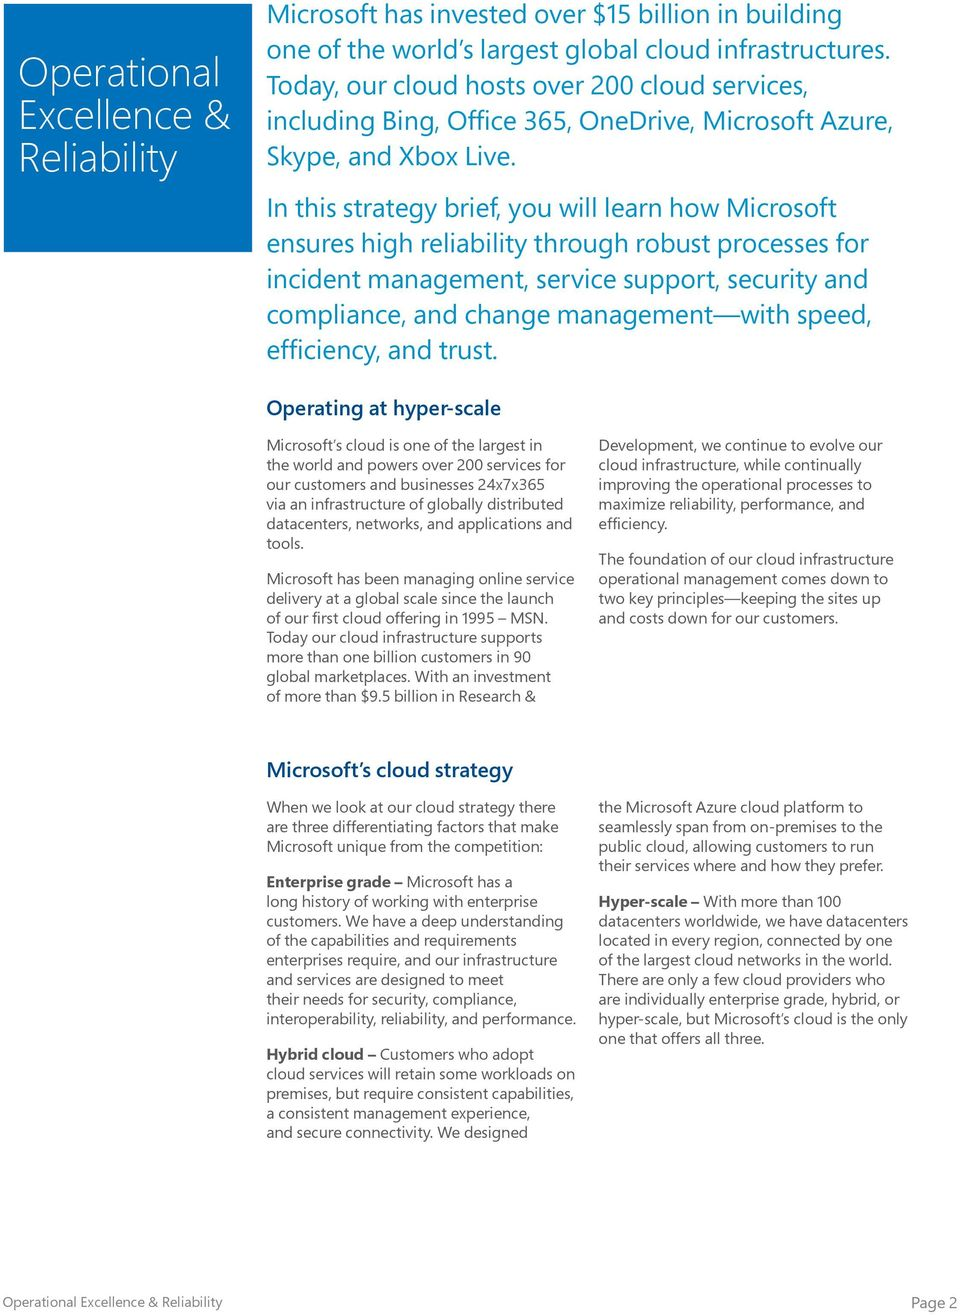 In this strategy brief, you will learn how Microsoft ensures high reliability through robust processes for incident management, service support, security and compliance, and change management with